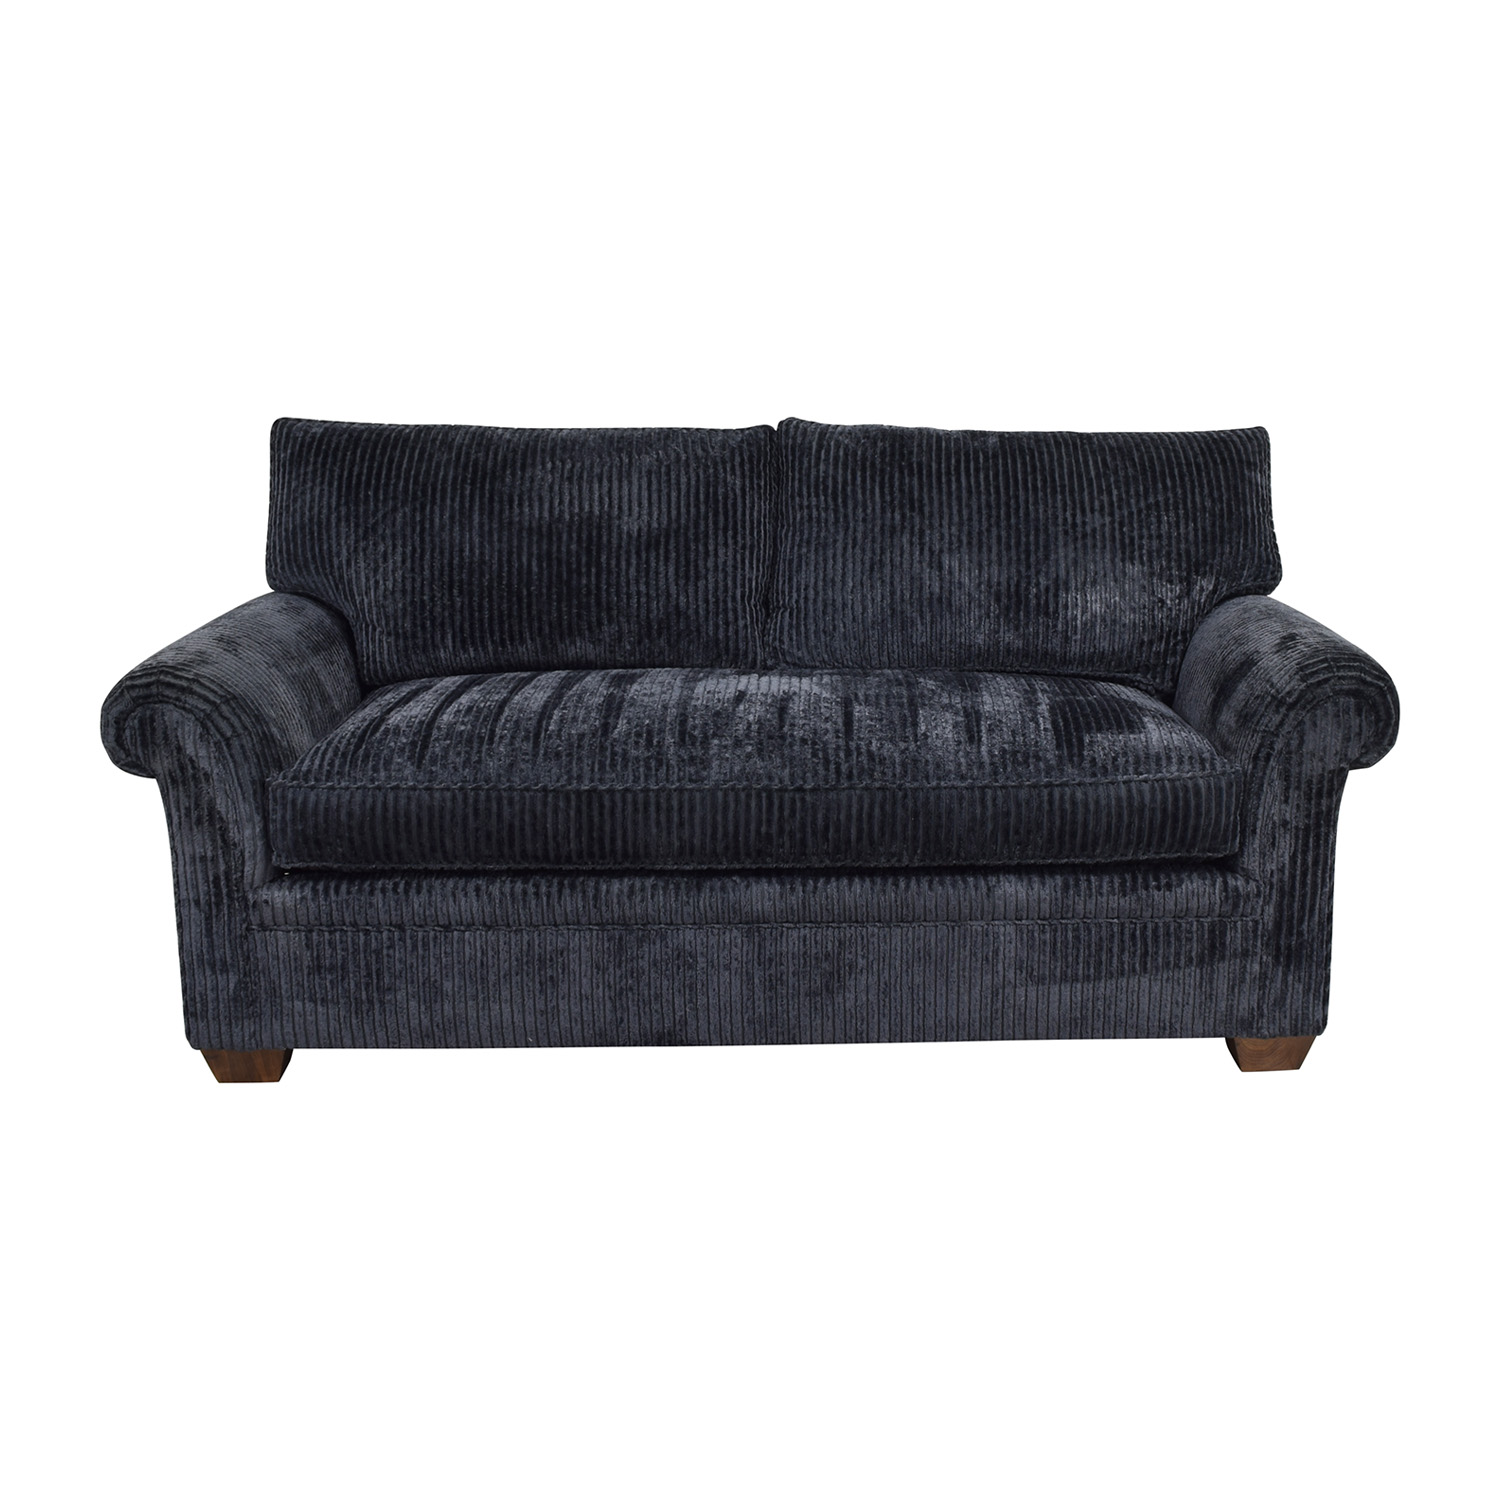 Phenomenal 70 Off Furniture Masters Furniture Masters Blue Corduroy Loveseat Sofas Andrewgaddart Wooden Chair Designs For Living Room Andrewgaddartcom